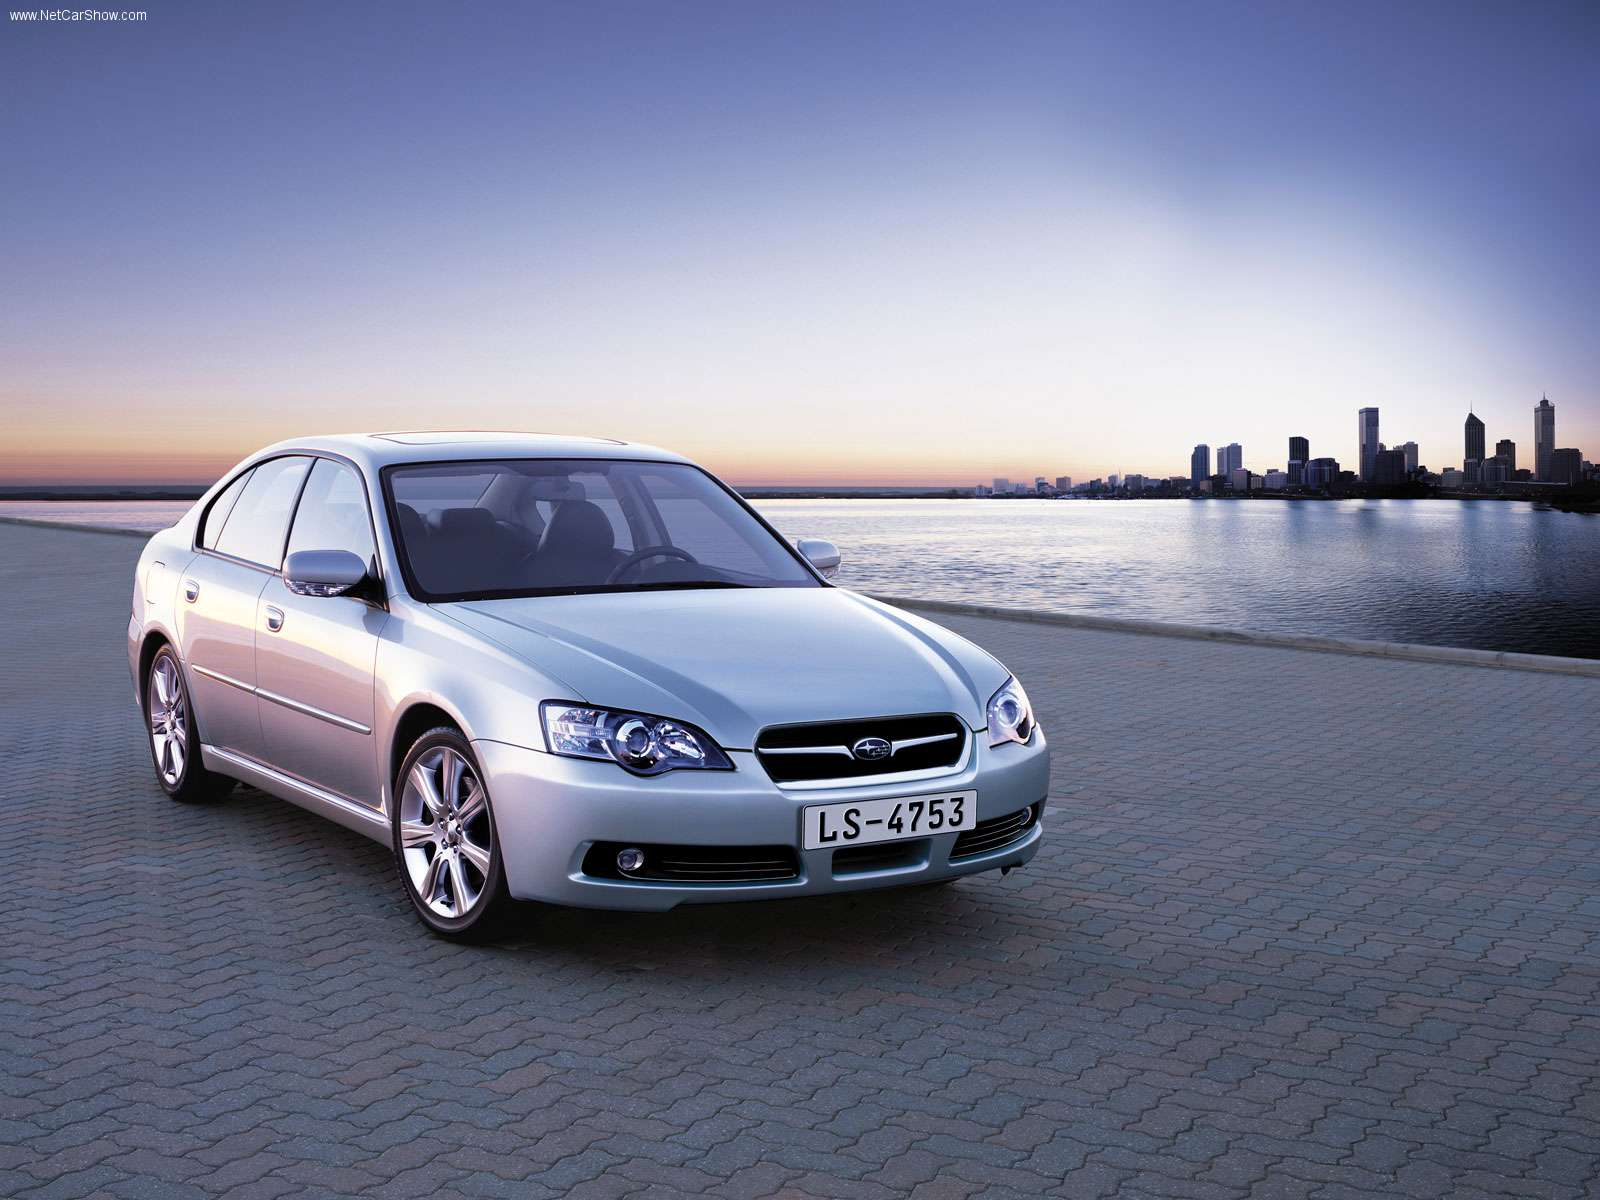 Subaru Legacy Picture 34238 Subaru Photo Gallery Carsbase Com